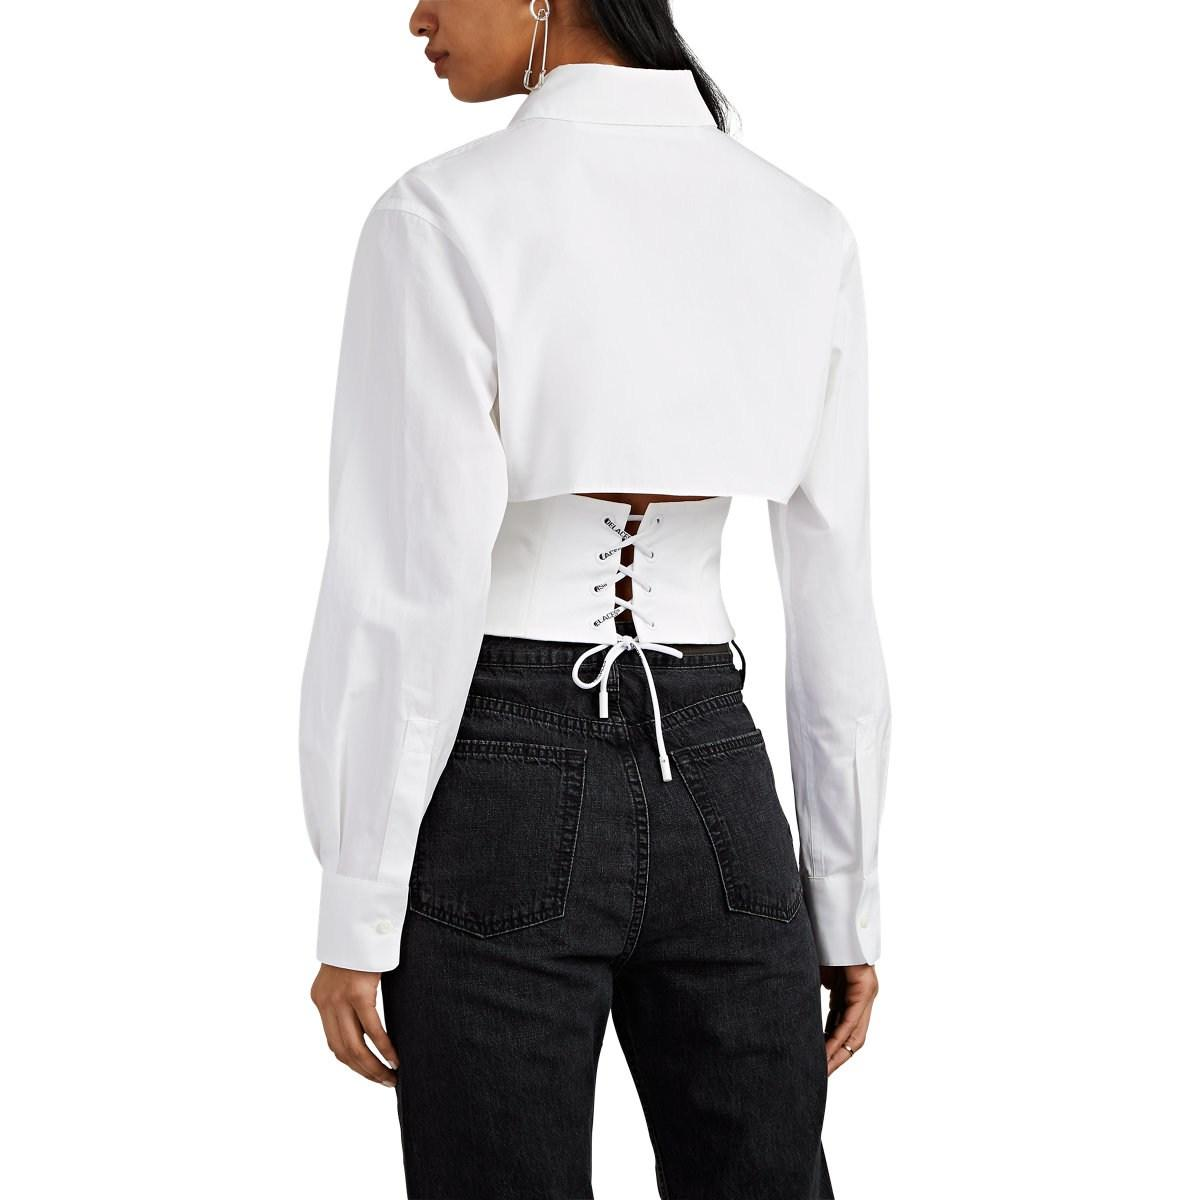 ed3b1a7307 Off-White c o Virgil Abloh - White Cotton Faille Crop Corset Shirt -. View  fullscreen